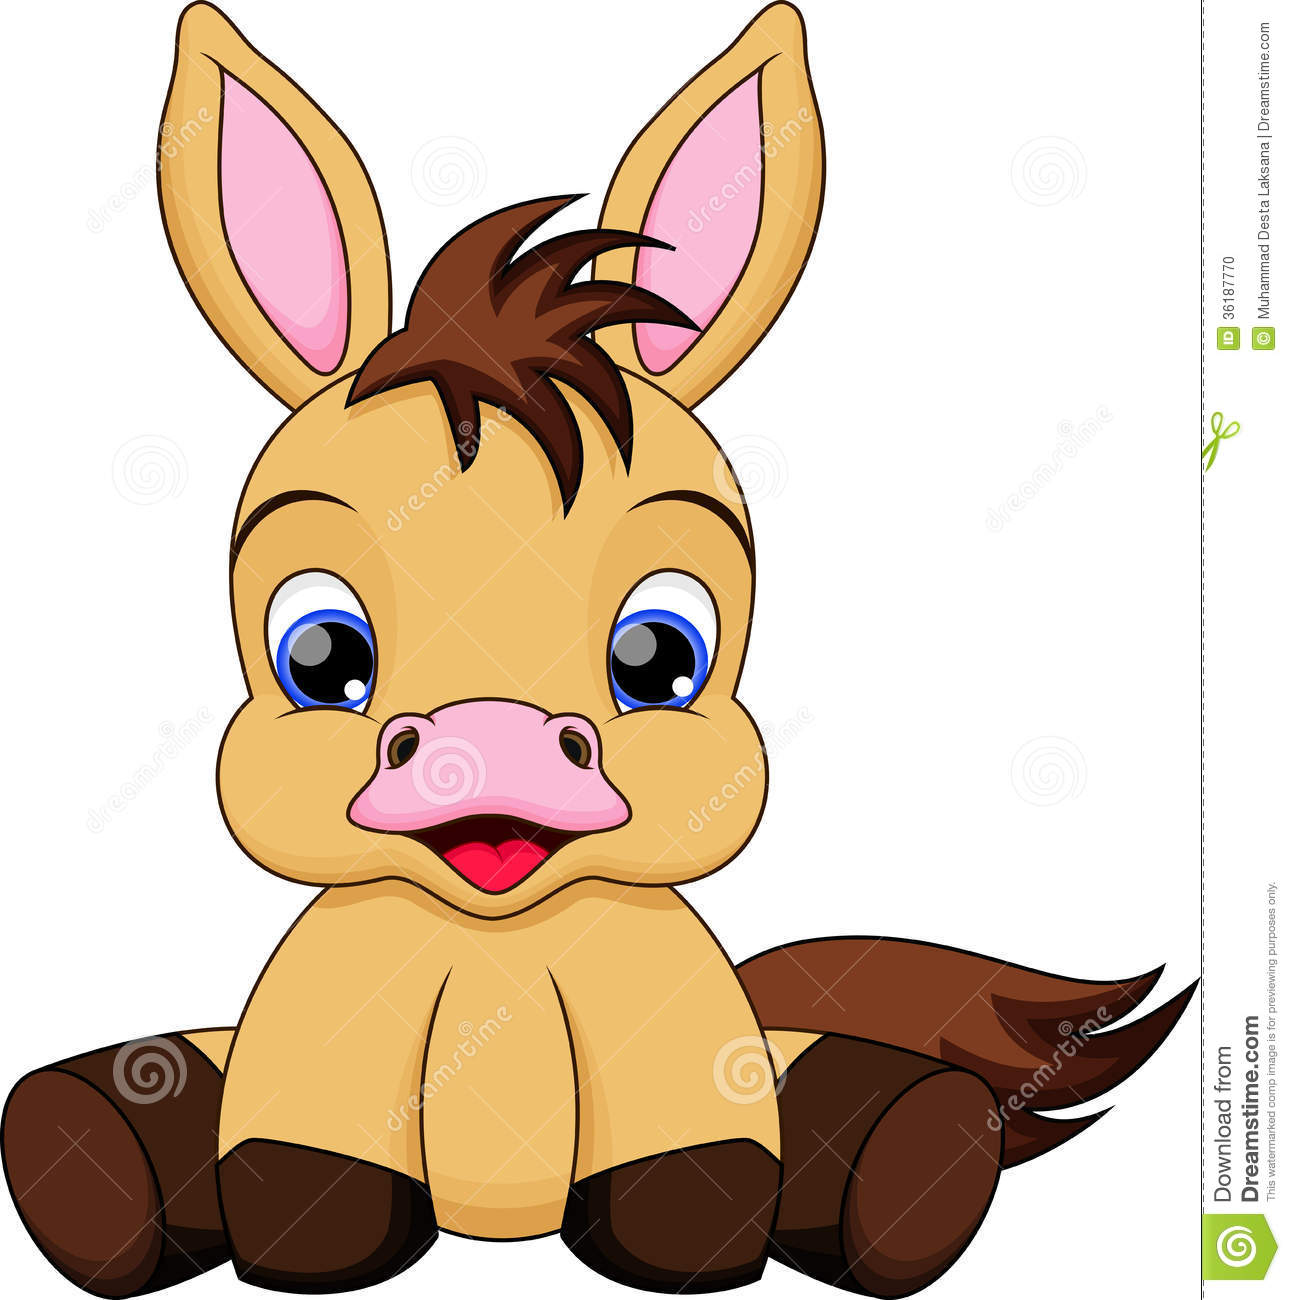 Pony Cartoon Clipart - Clipart Kid